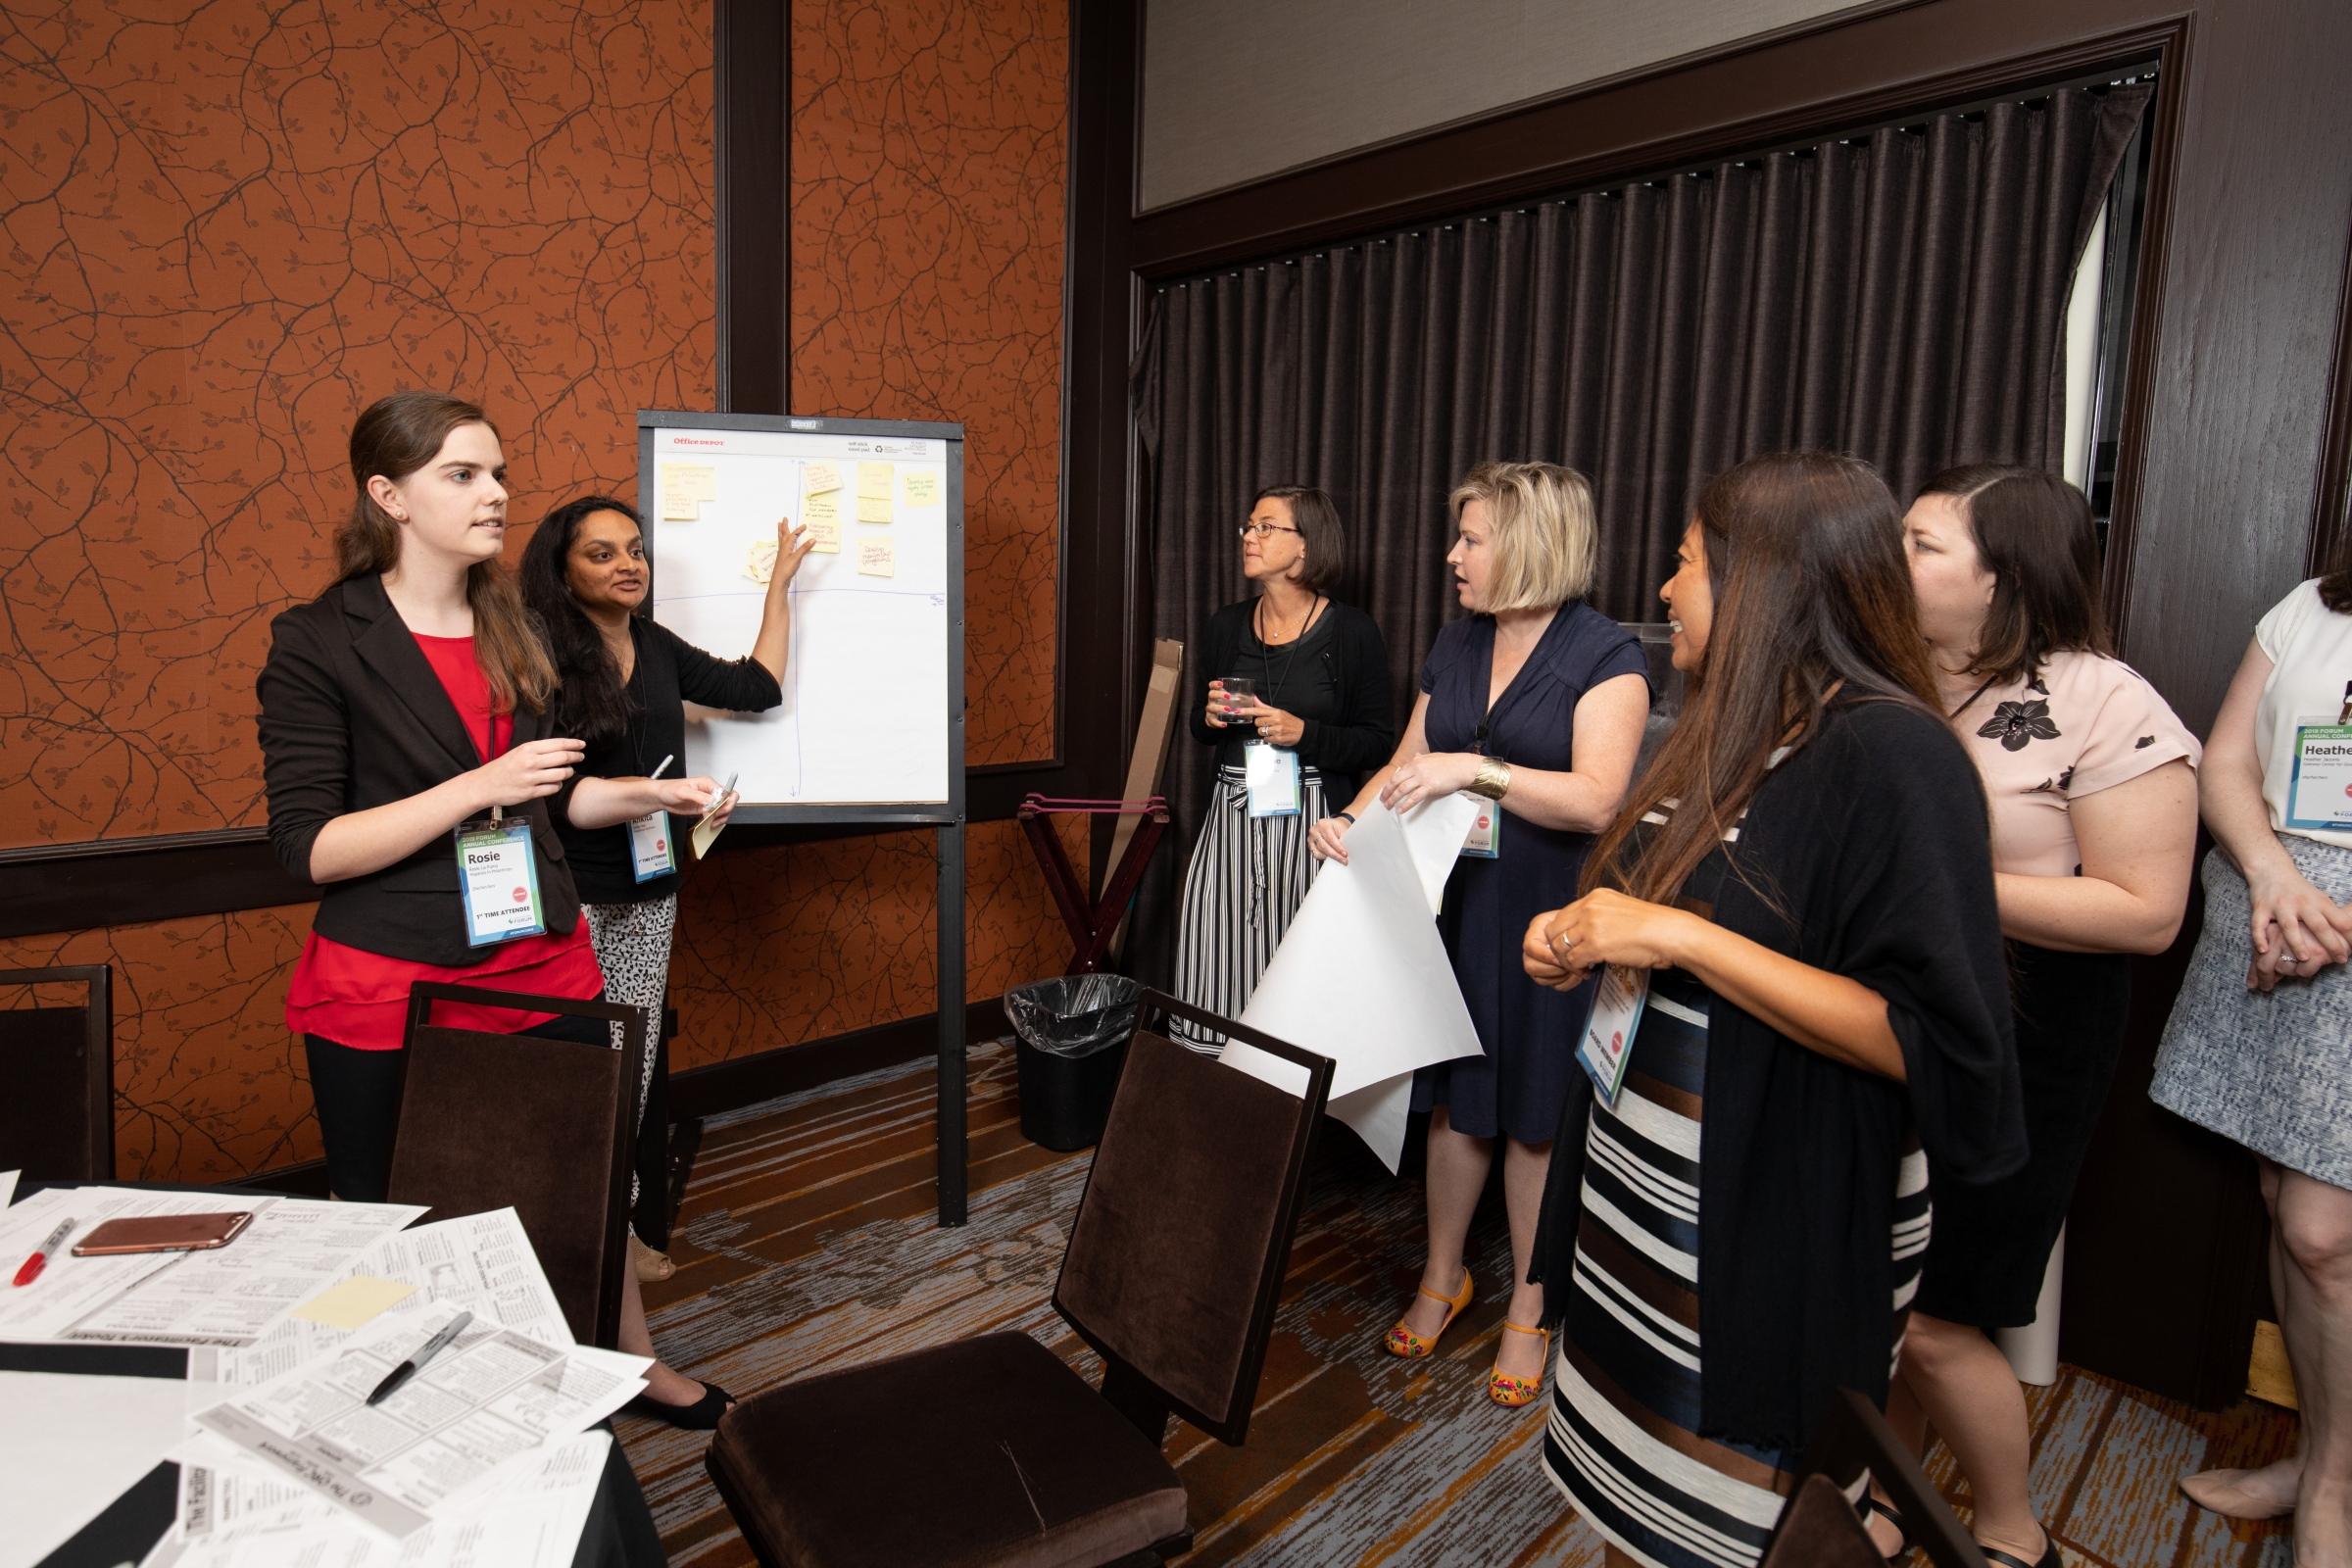 ForumCon19 attendees engaging in activity.